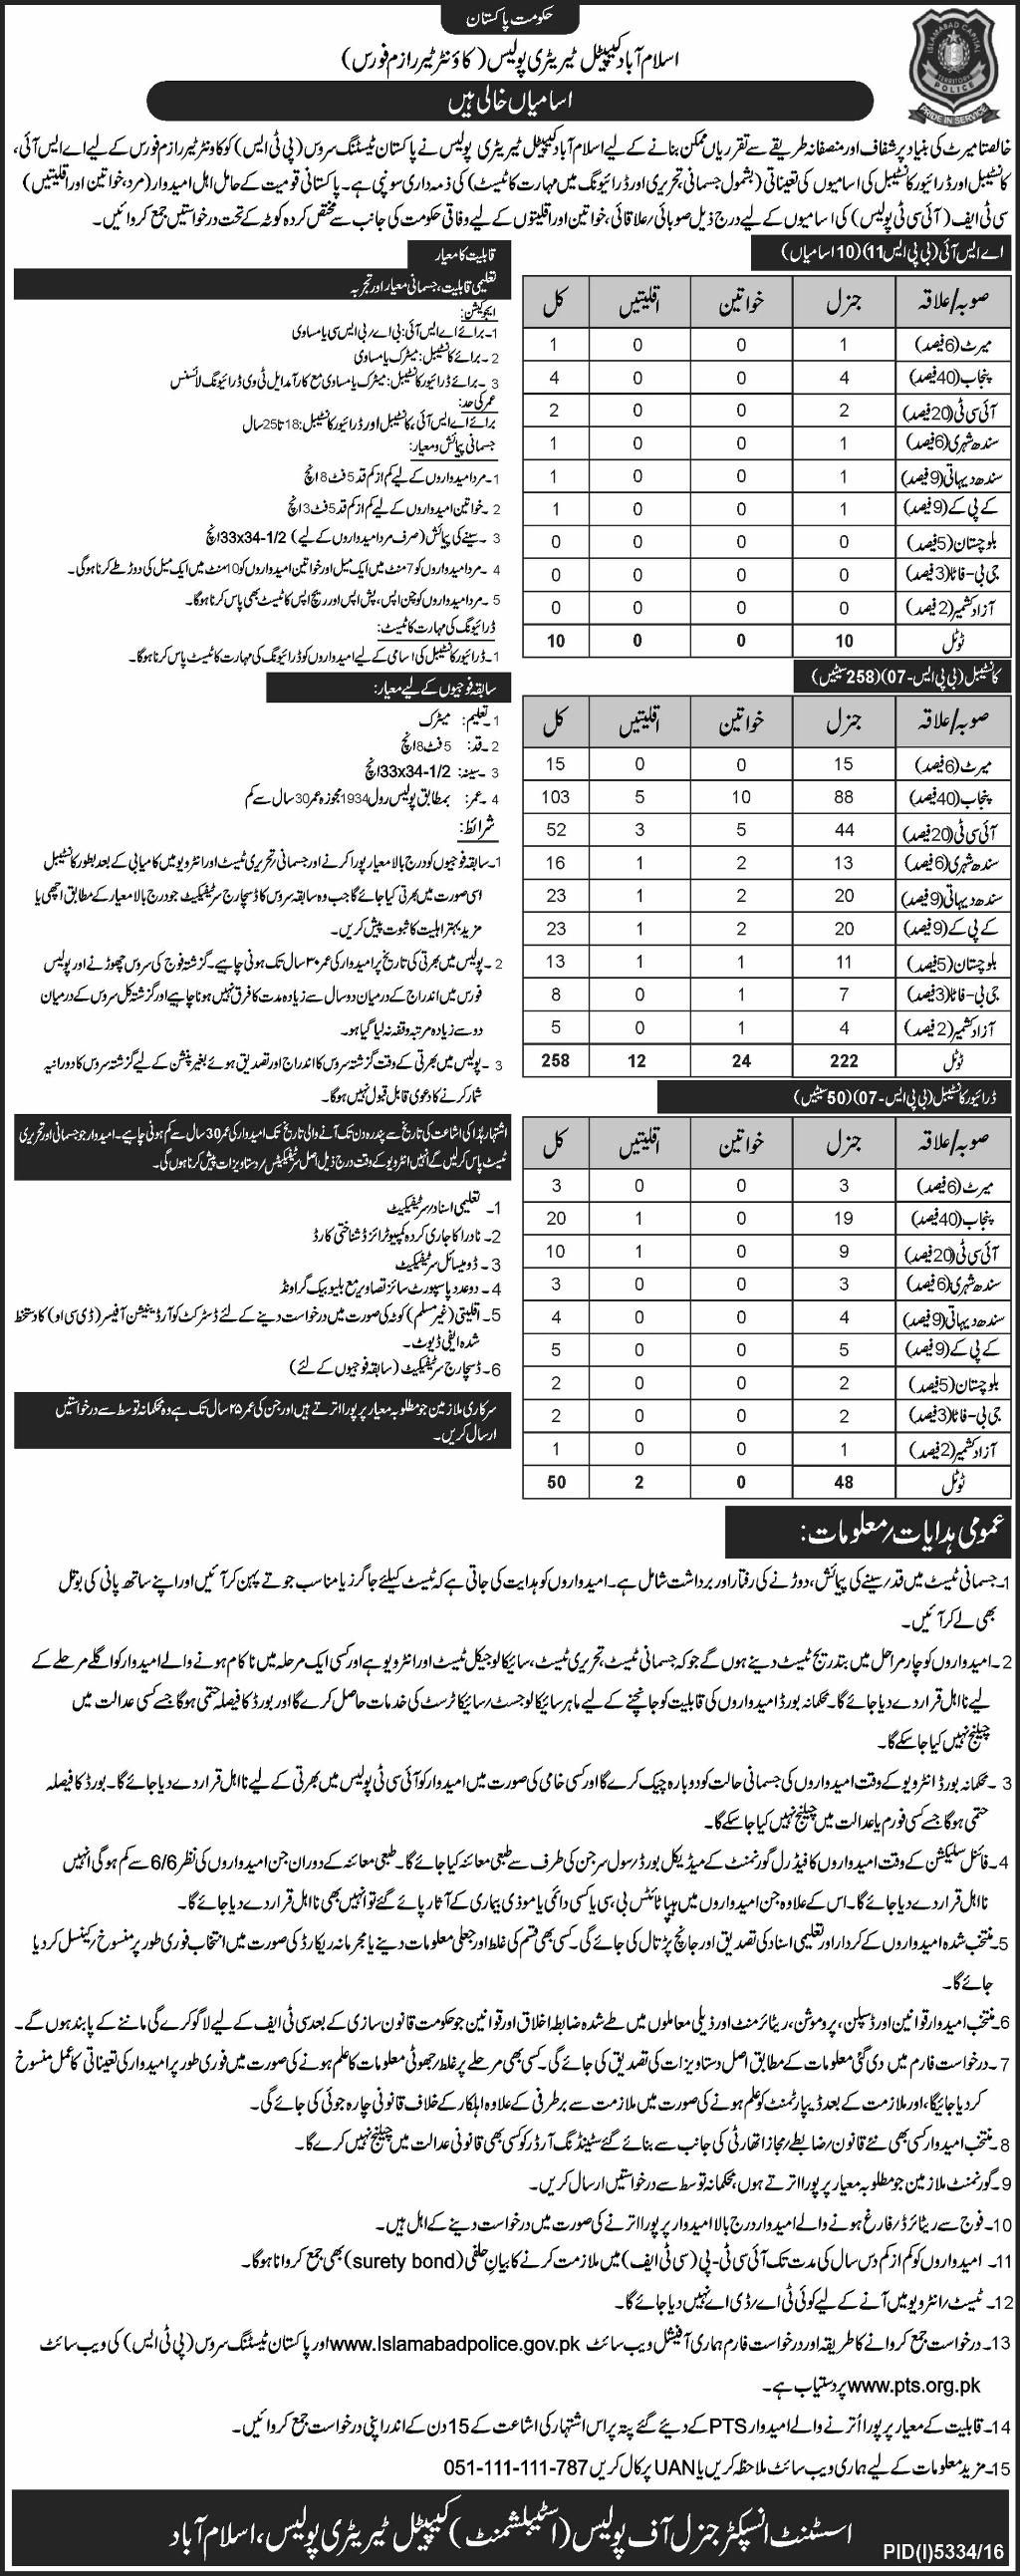 Islamabad Police Jobs 2017 PTS Form Last Date Eligibility